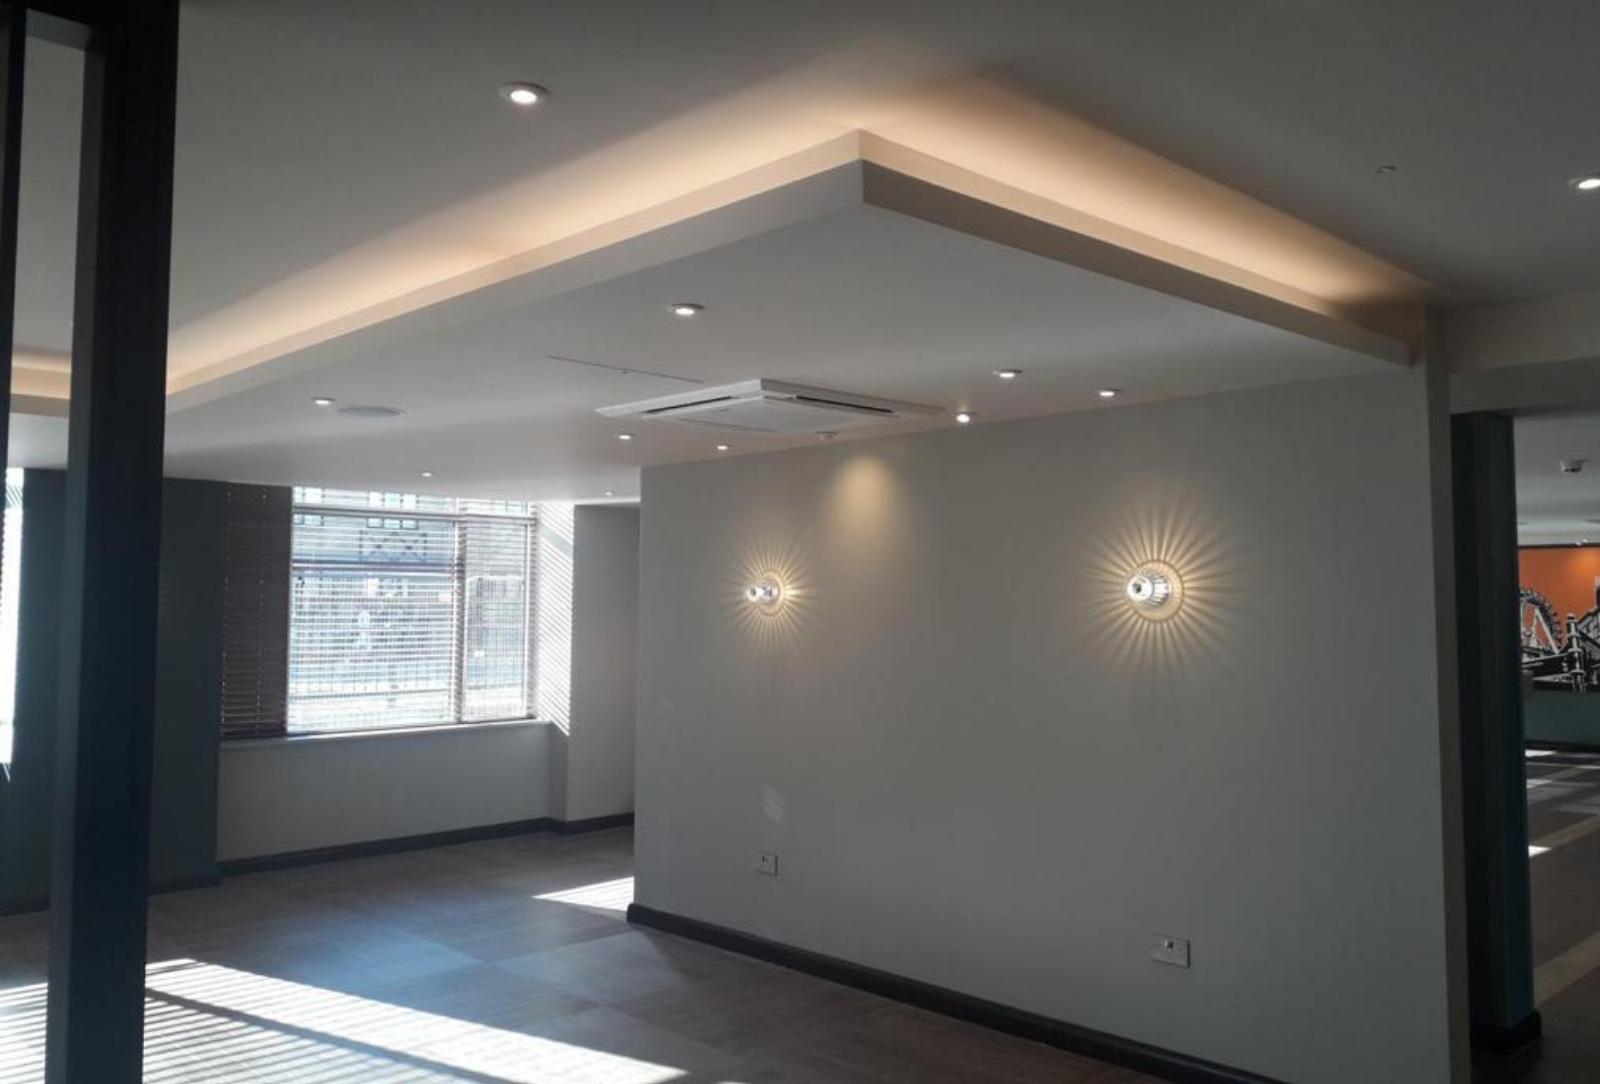 Commercial joinery at Premier Inn ceiling light feature